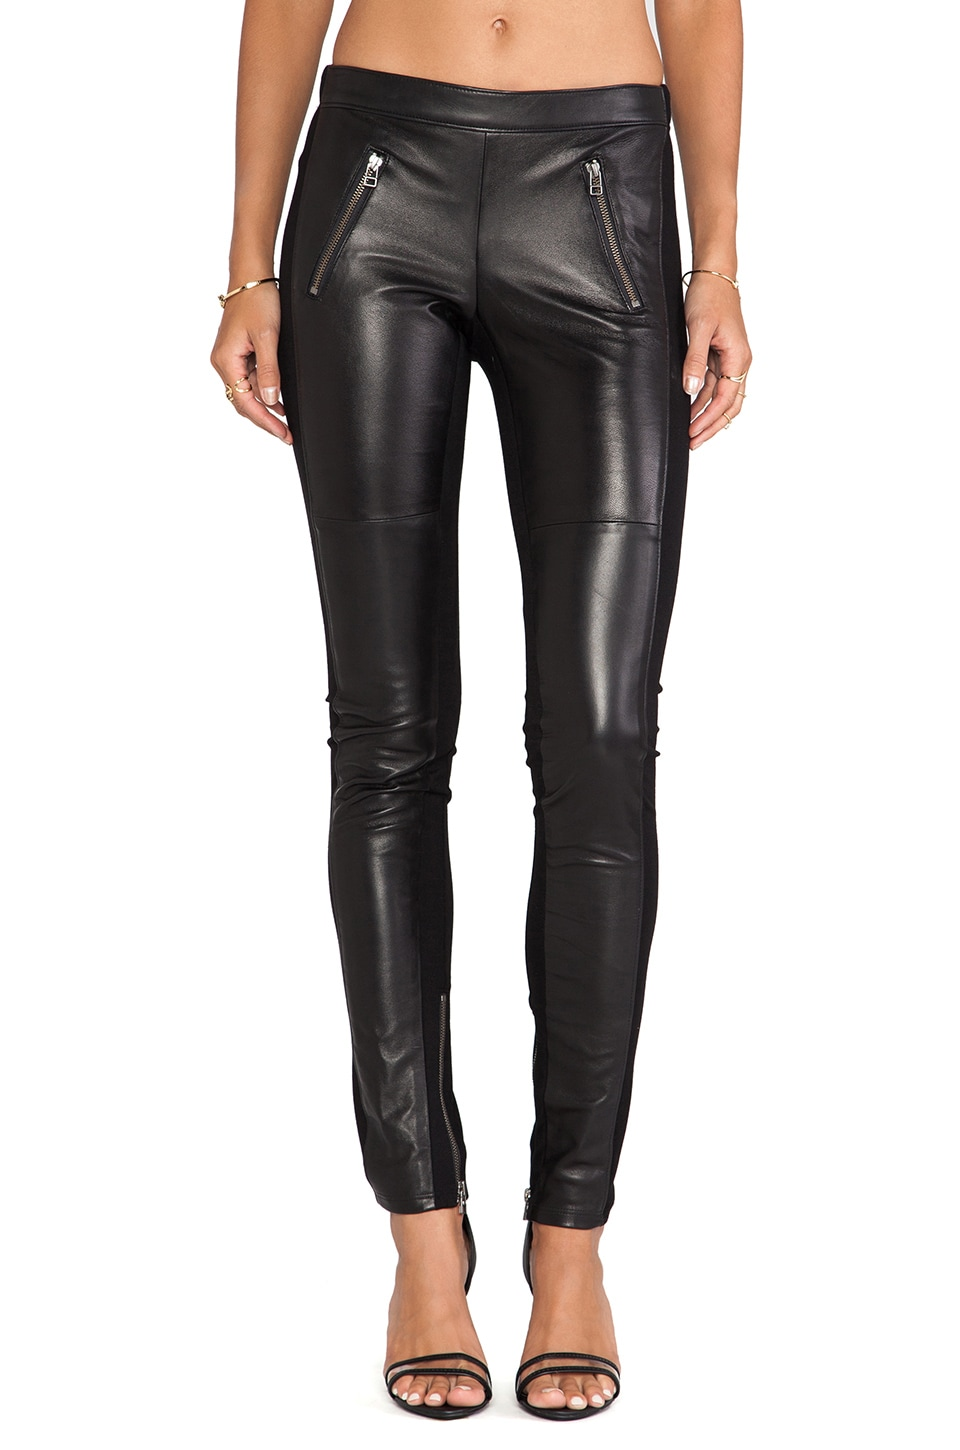 Graham & Spencer Ponti Leather Pants in Black